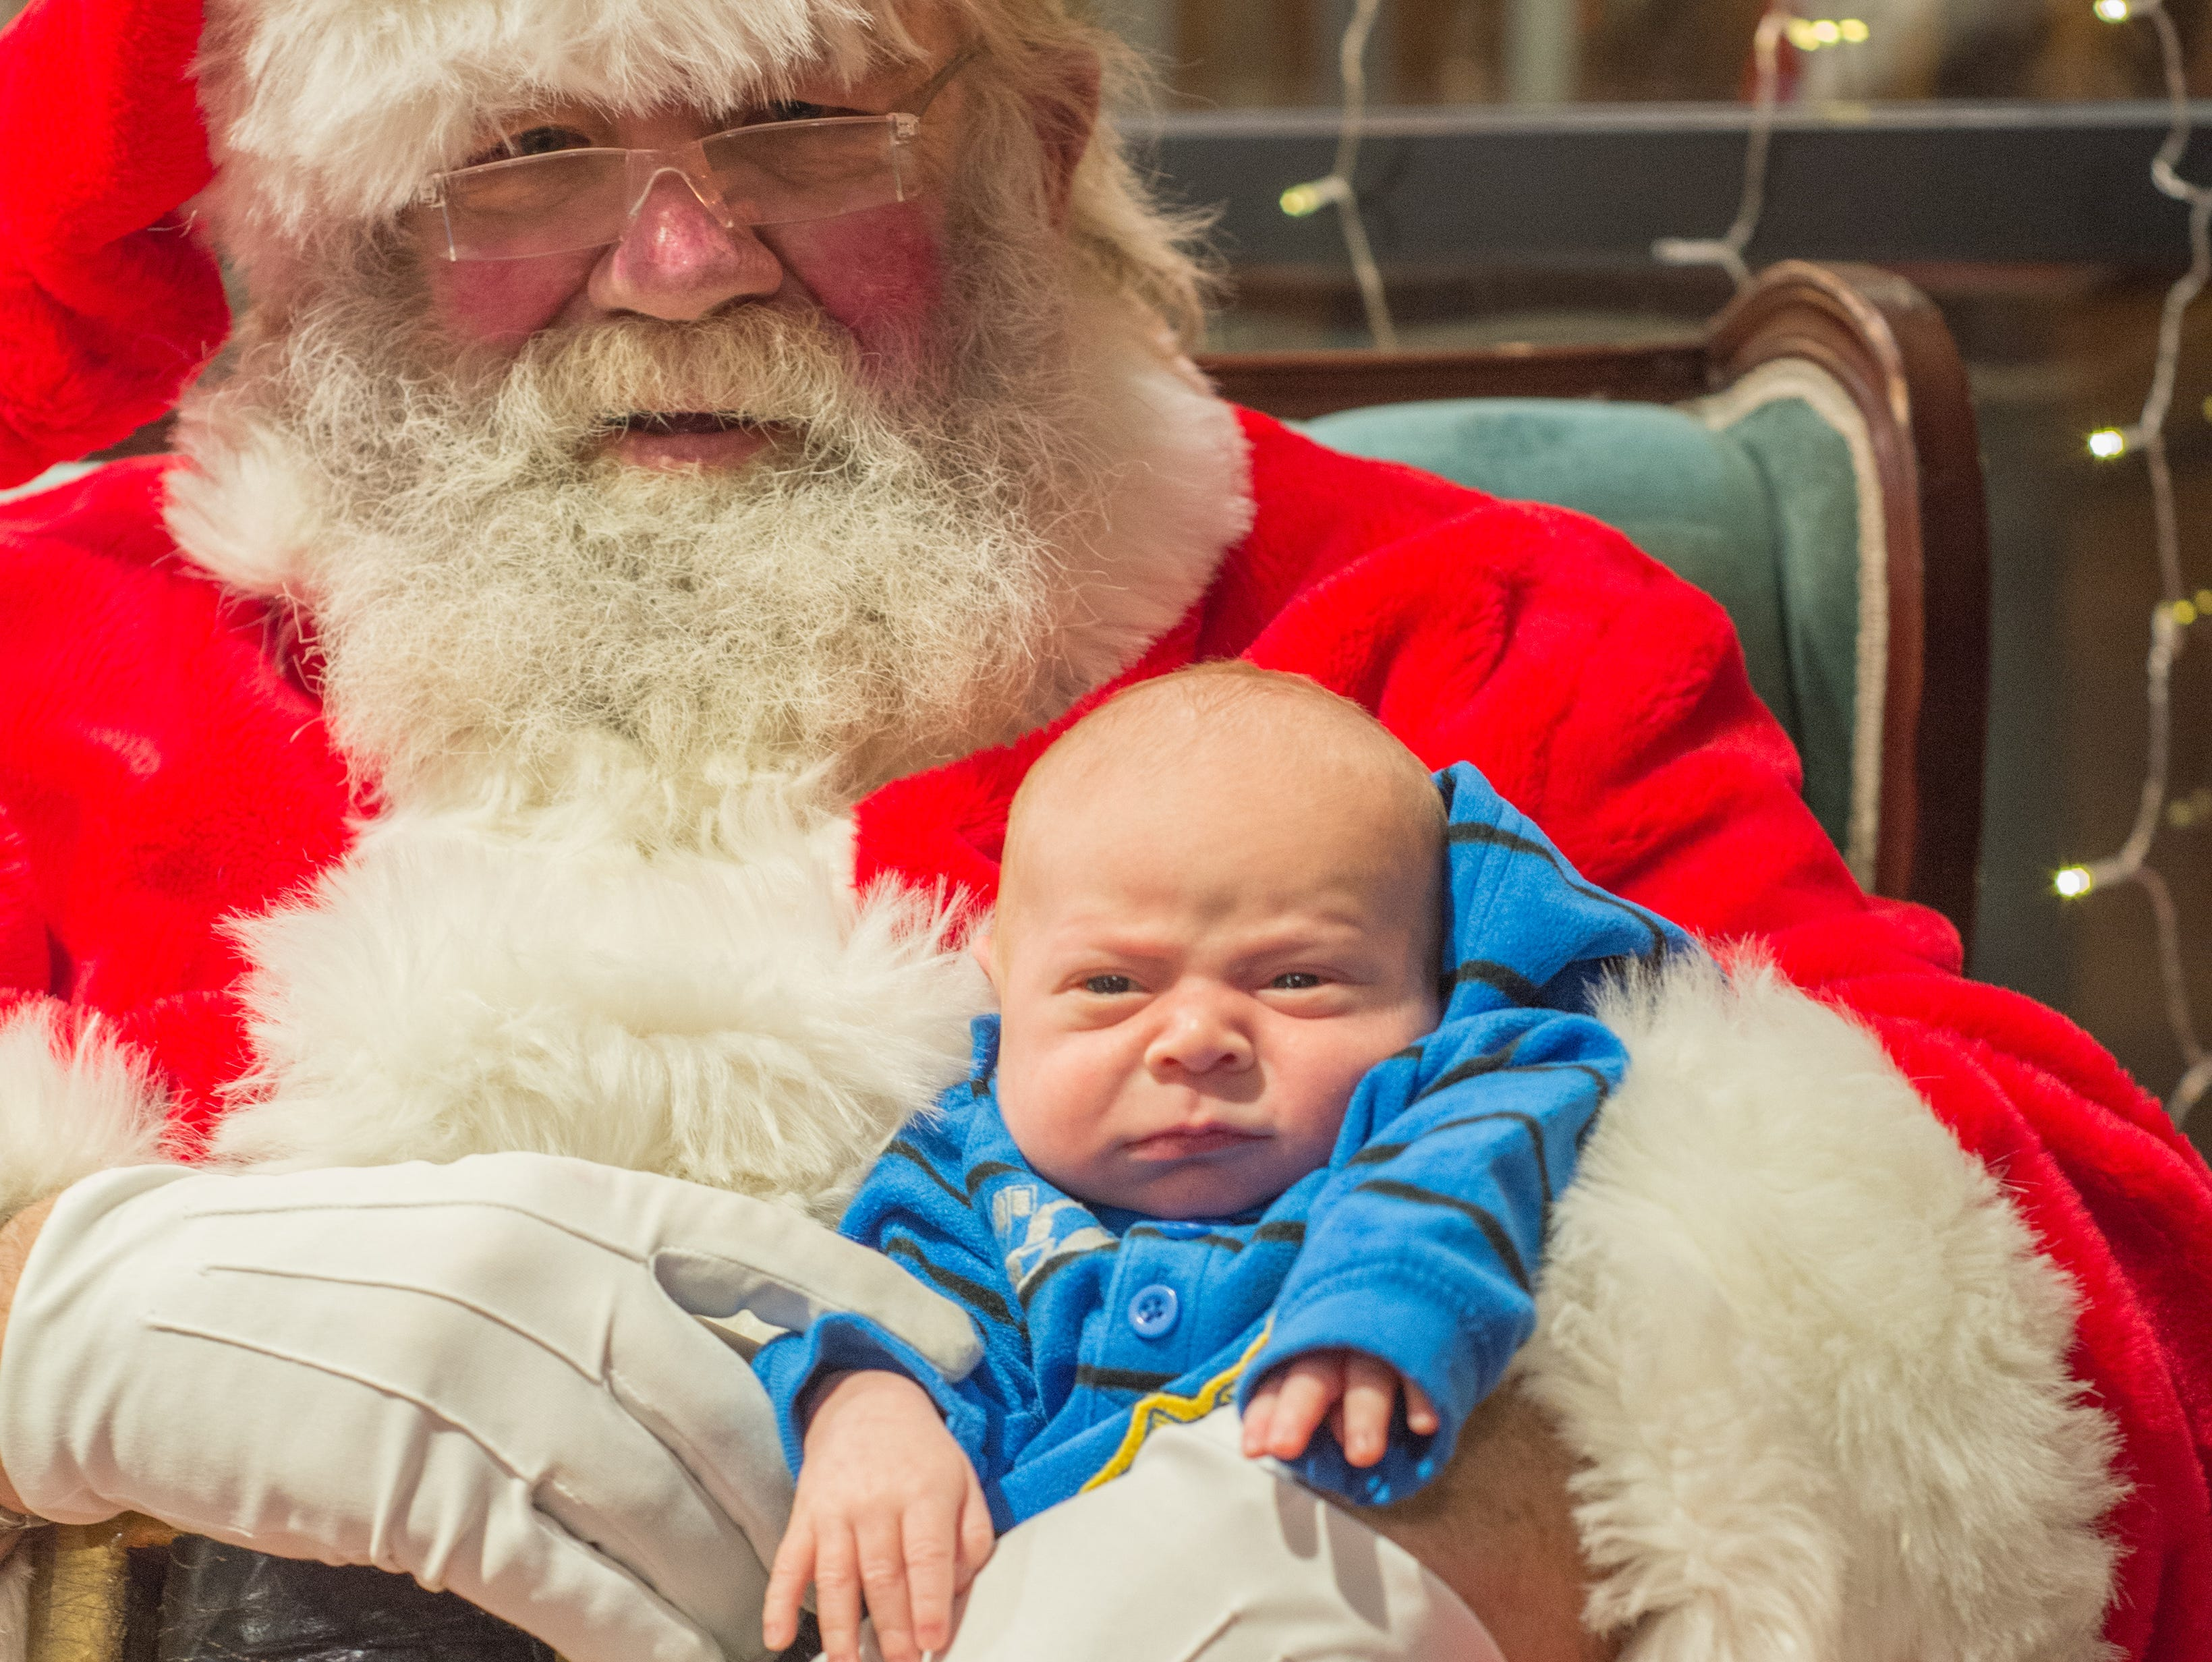 Izaiah Johnson meets Mr. Claus for the first time during the Santa on the Square event presented by Historic Downtown Gallatin at 106 Public Square on Saturday, Dec. 22.